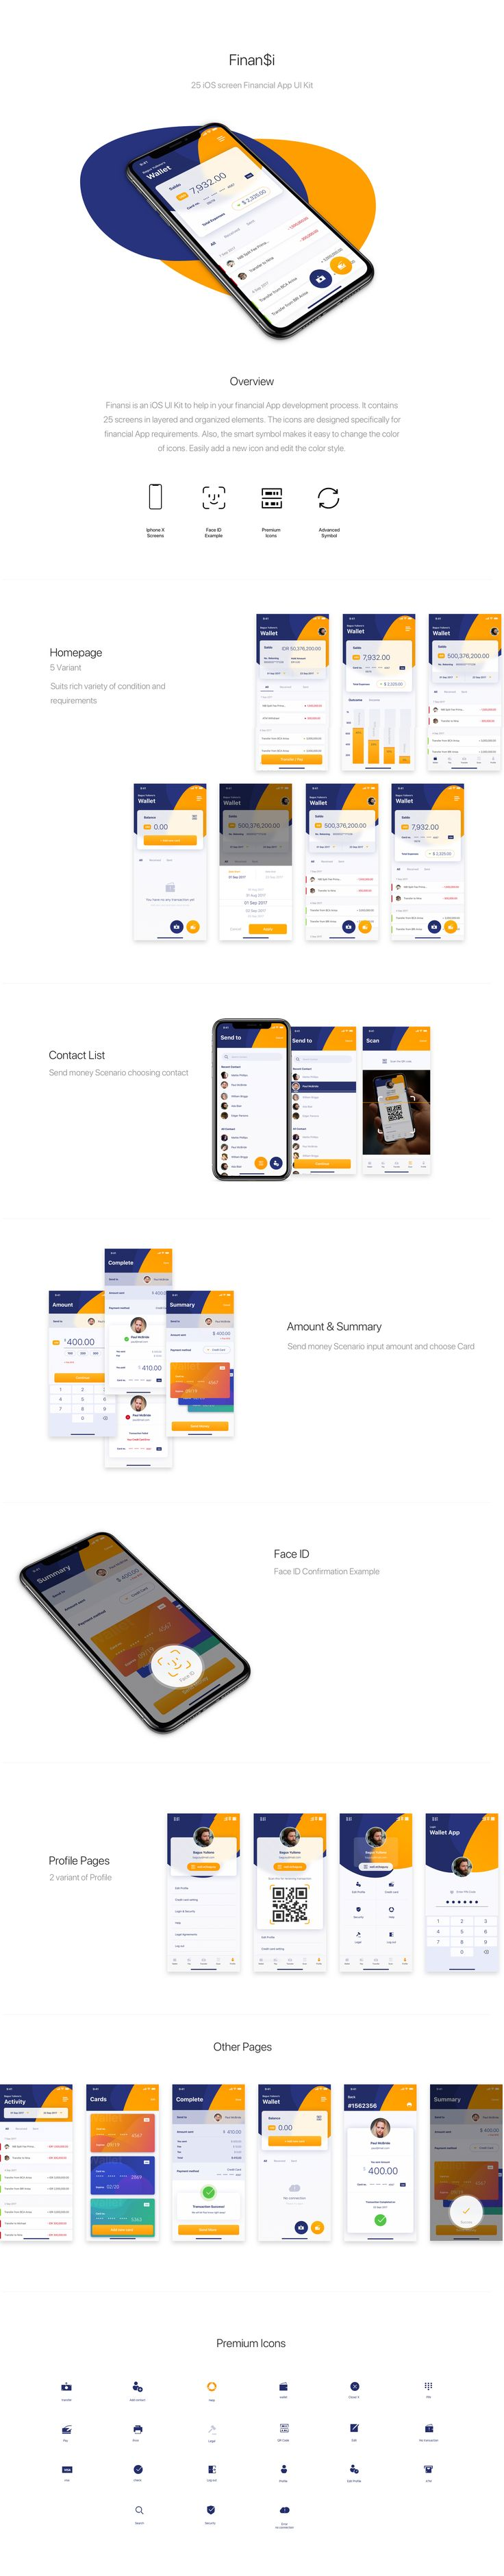 Finansi iOS UI Kit - 25 iOS Financial App UI Screens for Sketch.